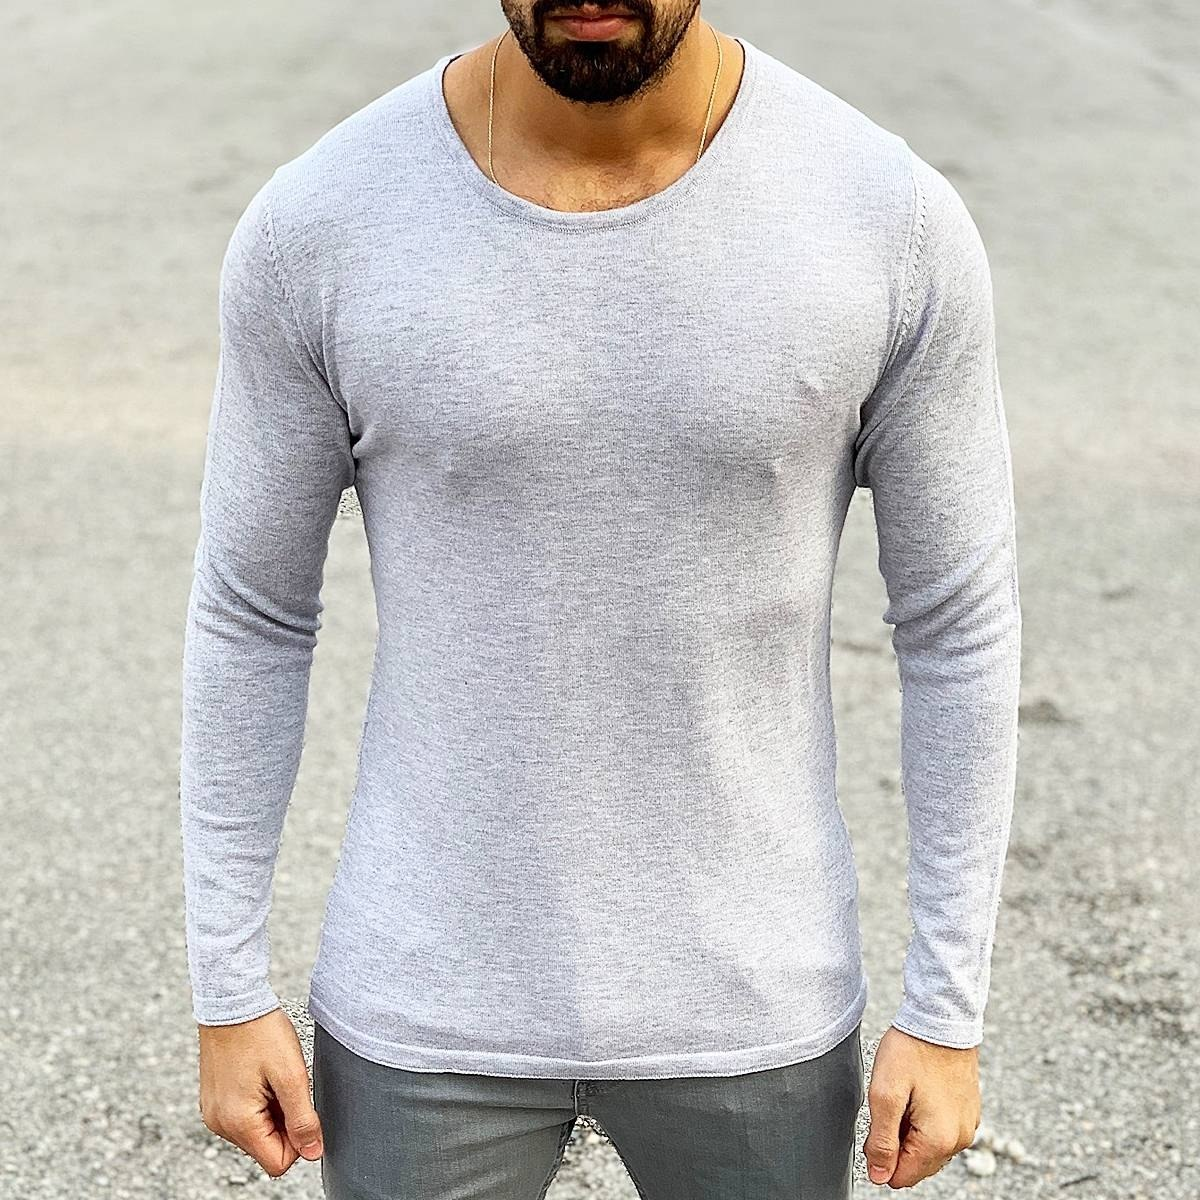 Slim-Fitting Classic Round-Neck Sweater in Grey